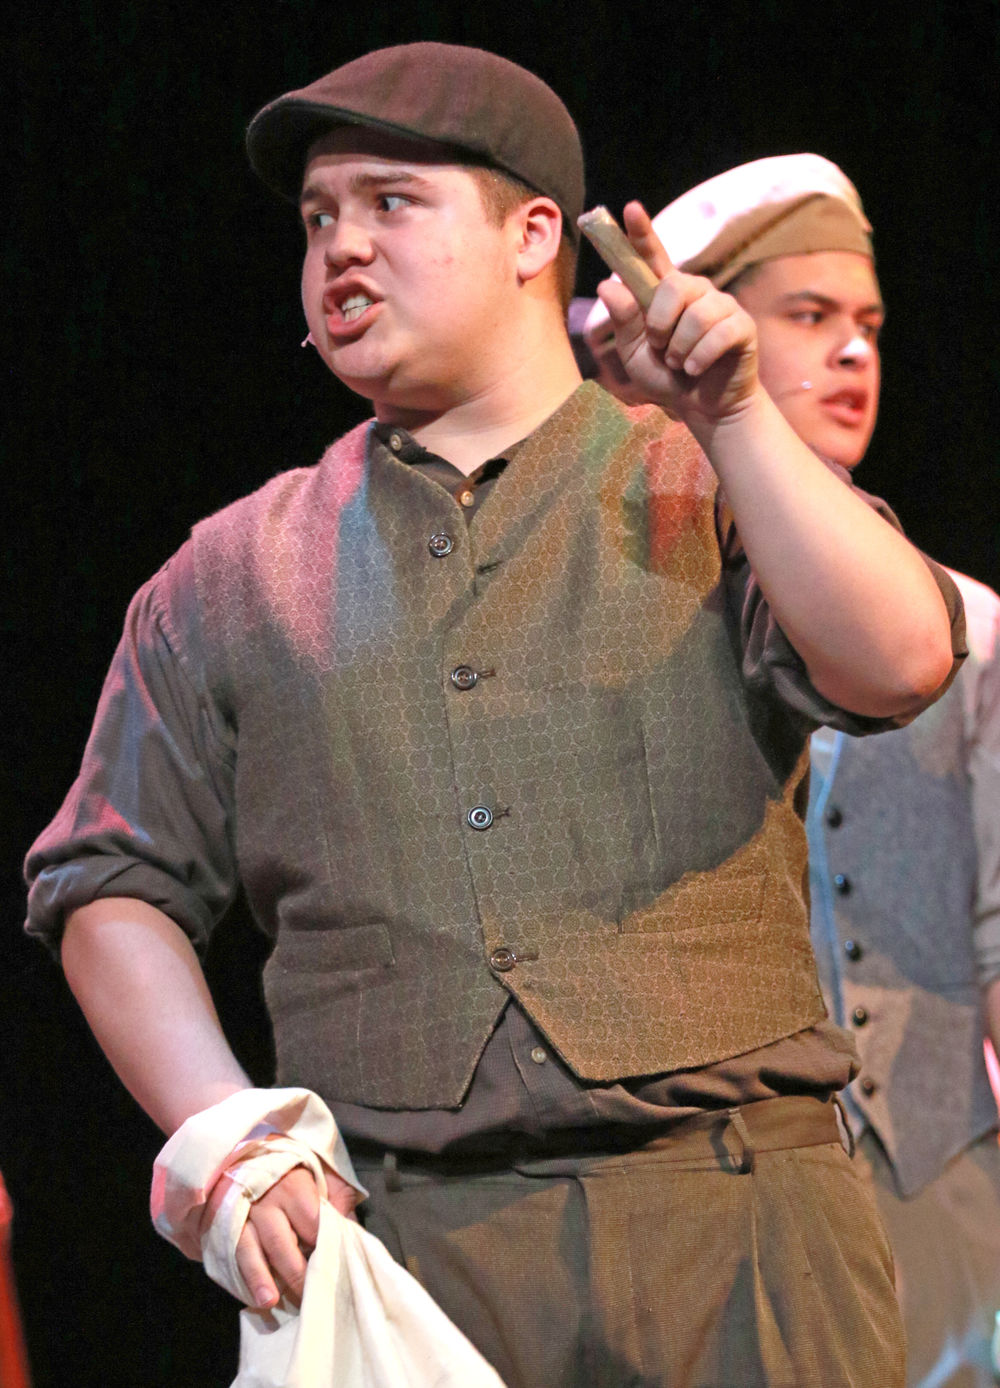 Scottsbluff High School's Billy Mosher named outstanding actor for role in Newsies